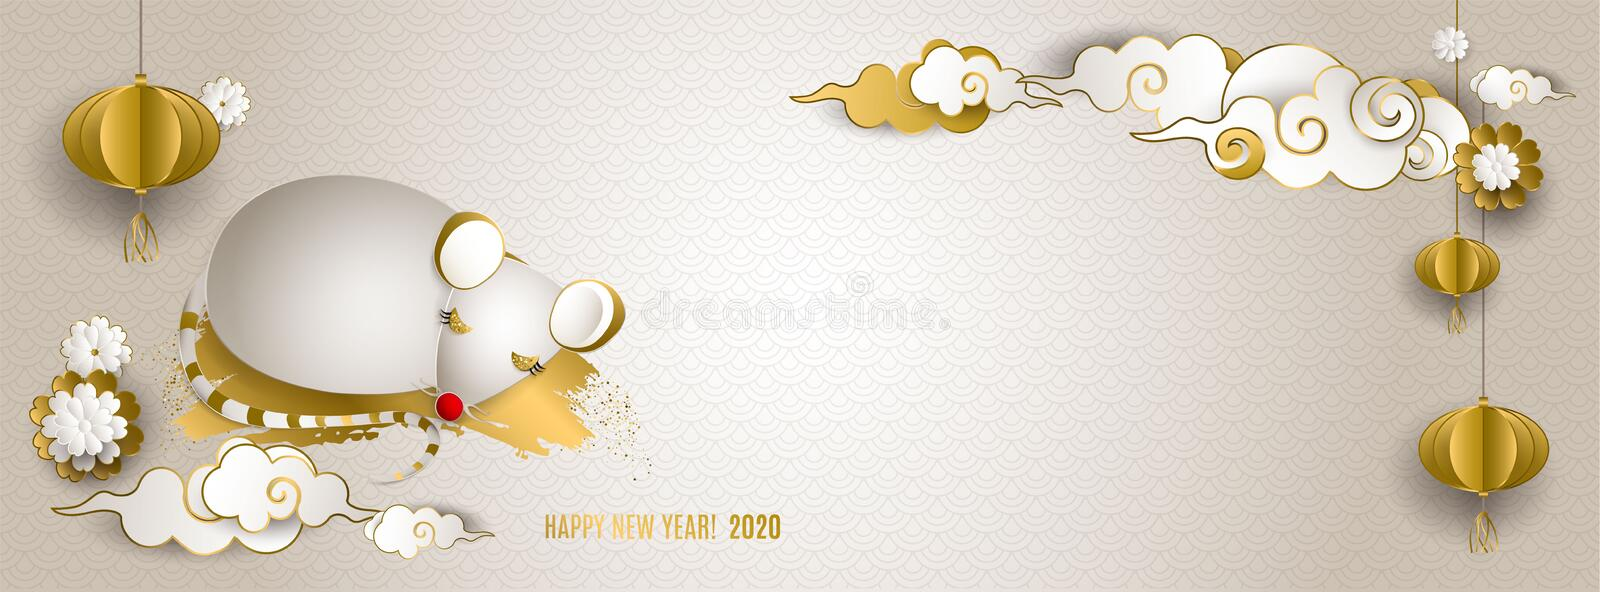 Happy Chinese New Year 2020 of rat. Banner: white and gold mouse, clouds, lanterns, flowers on light background. For stock photography